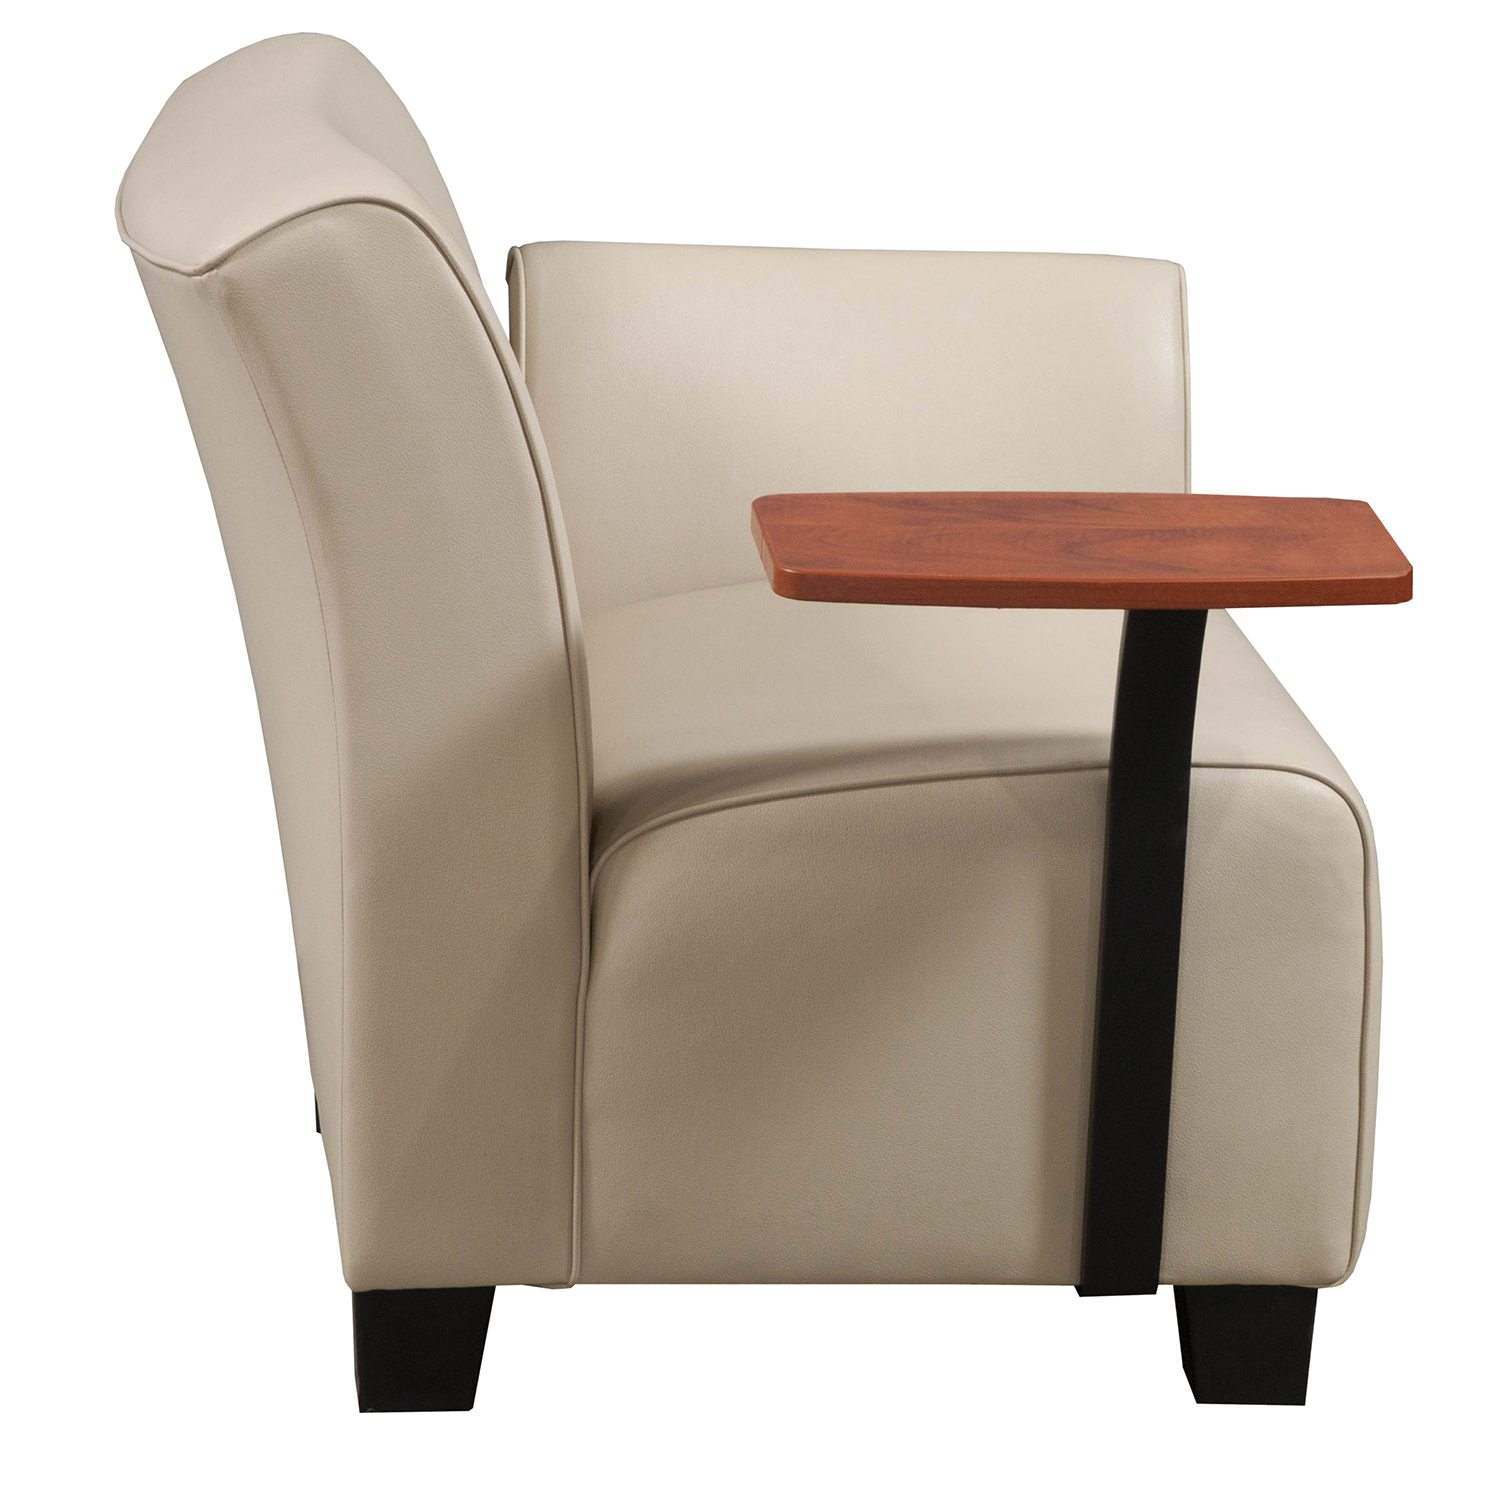 Steelcase Jenny Right Tablet Arm Lounge Chair In Tan PU Leather   Side